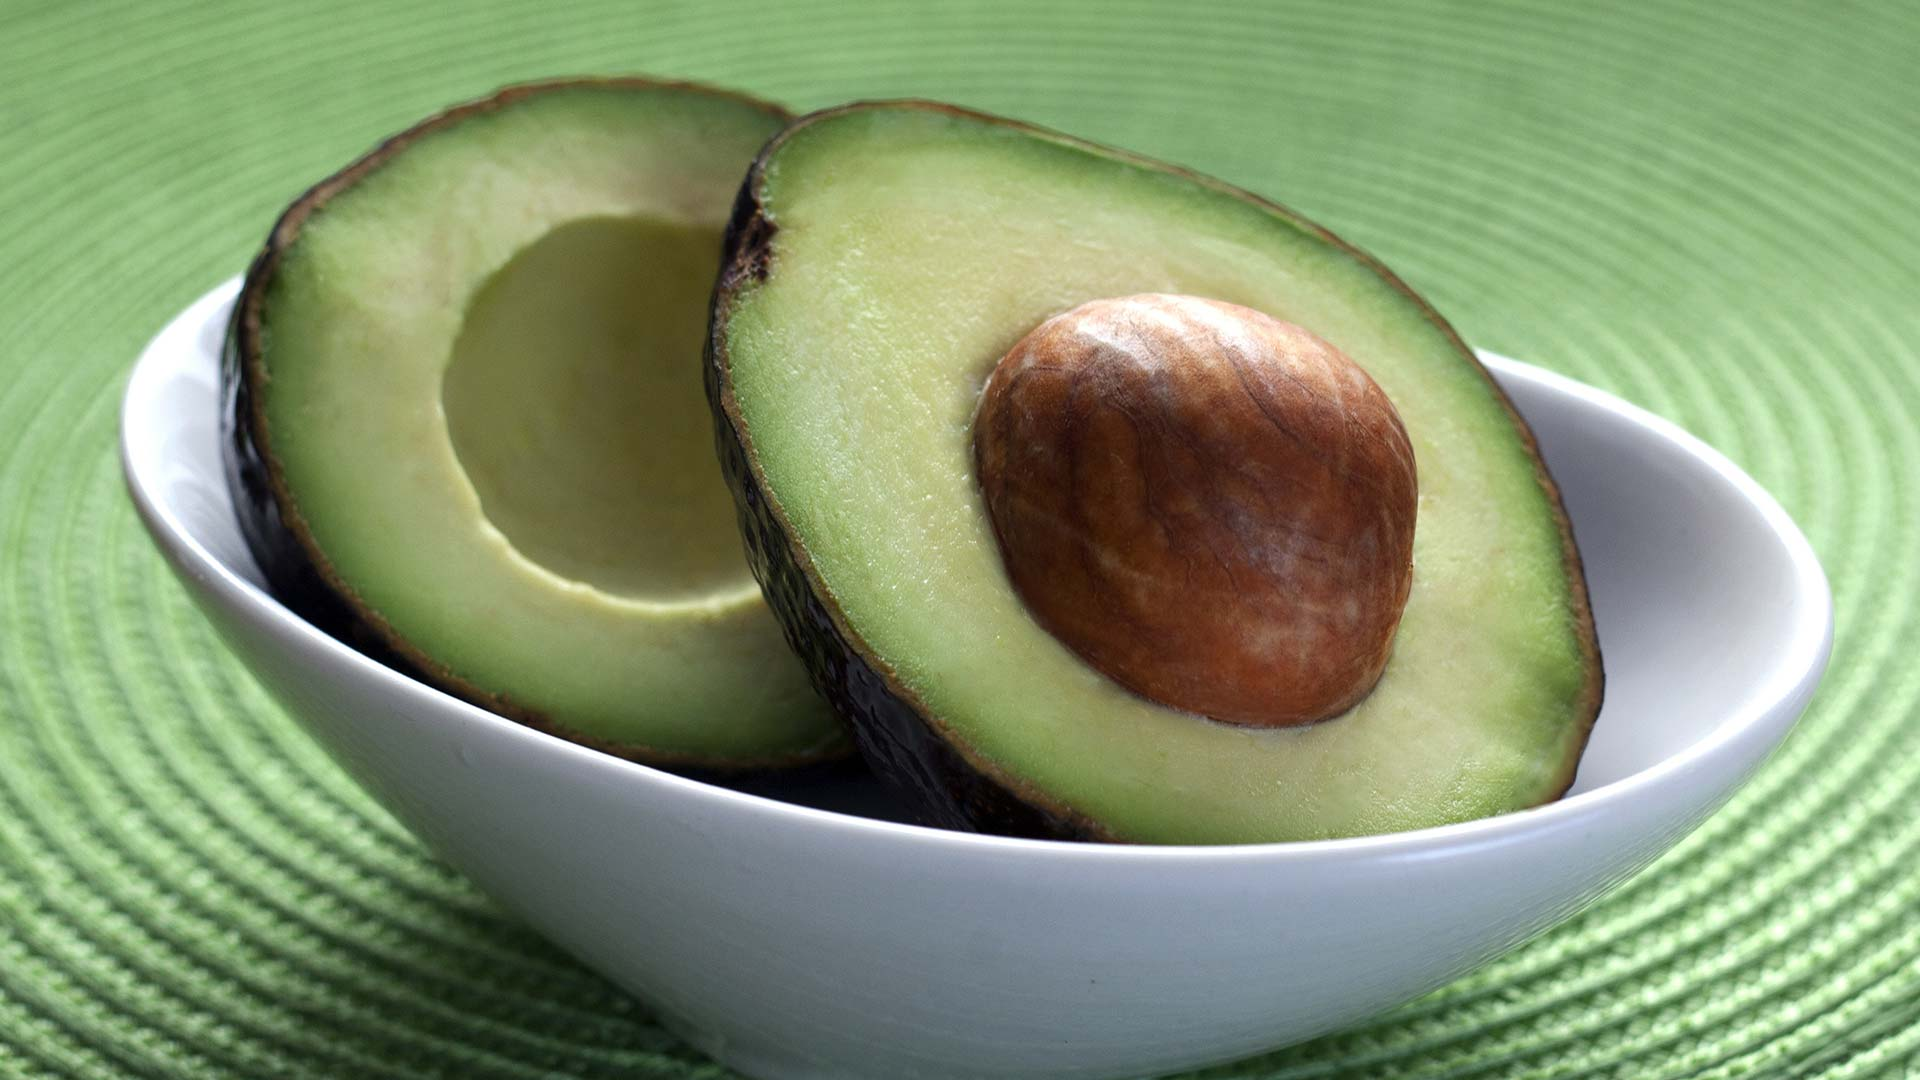 The U.S. is the largest importer of Mexican avocados, according to data from importers and exporters.